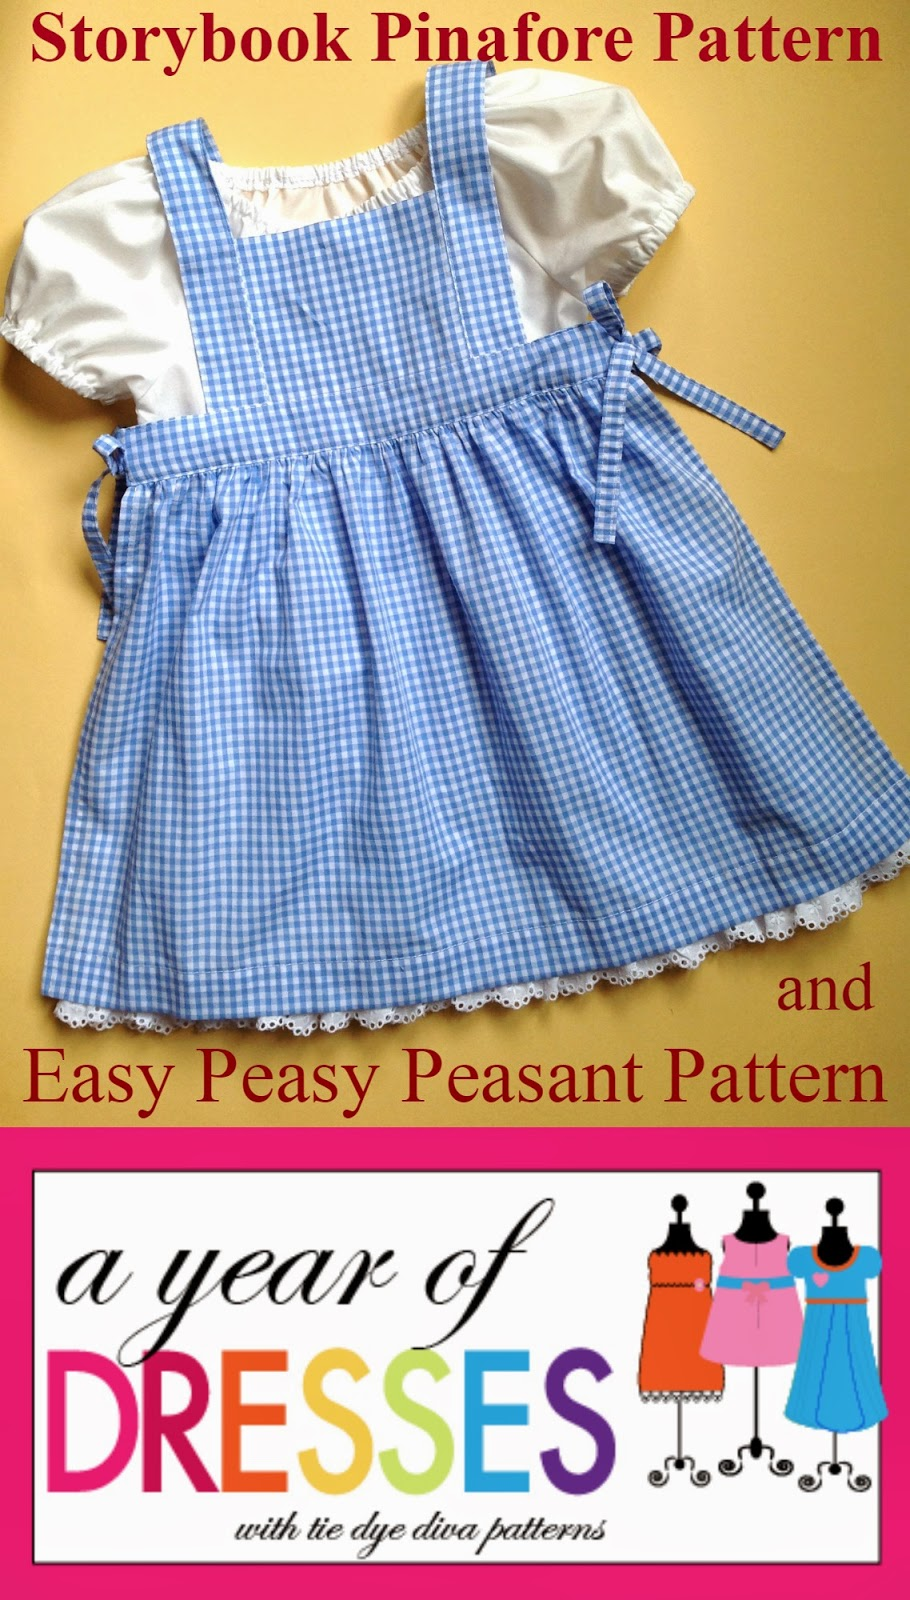 A Year Of Dresses Storybook Pinafore And Easy Peasy